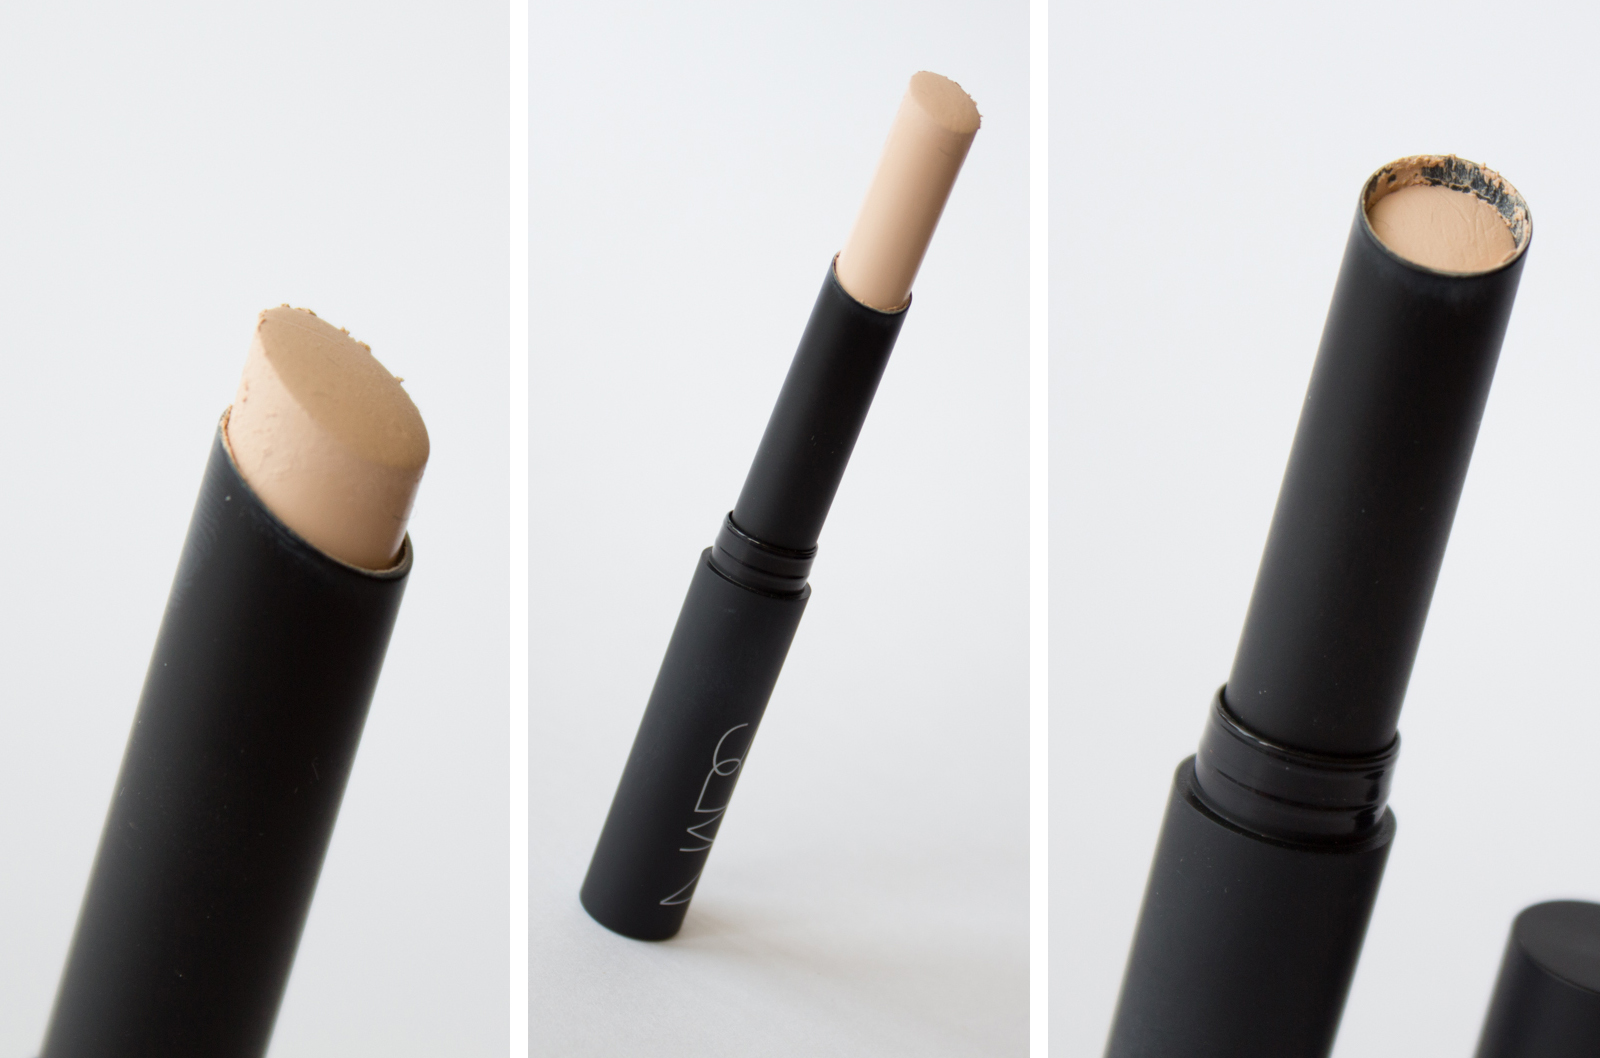 Nars Stick Concealer in Chantilly Review - A Lovely Allure